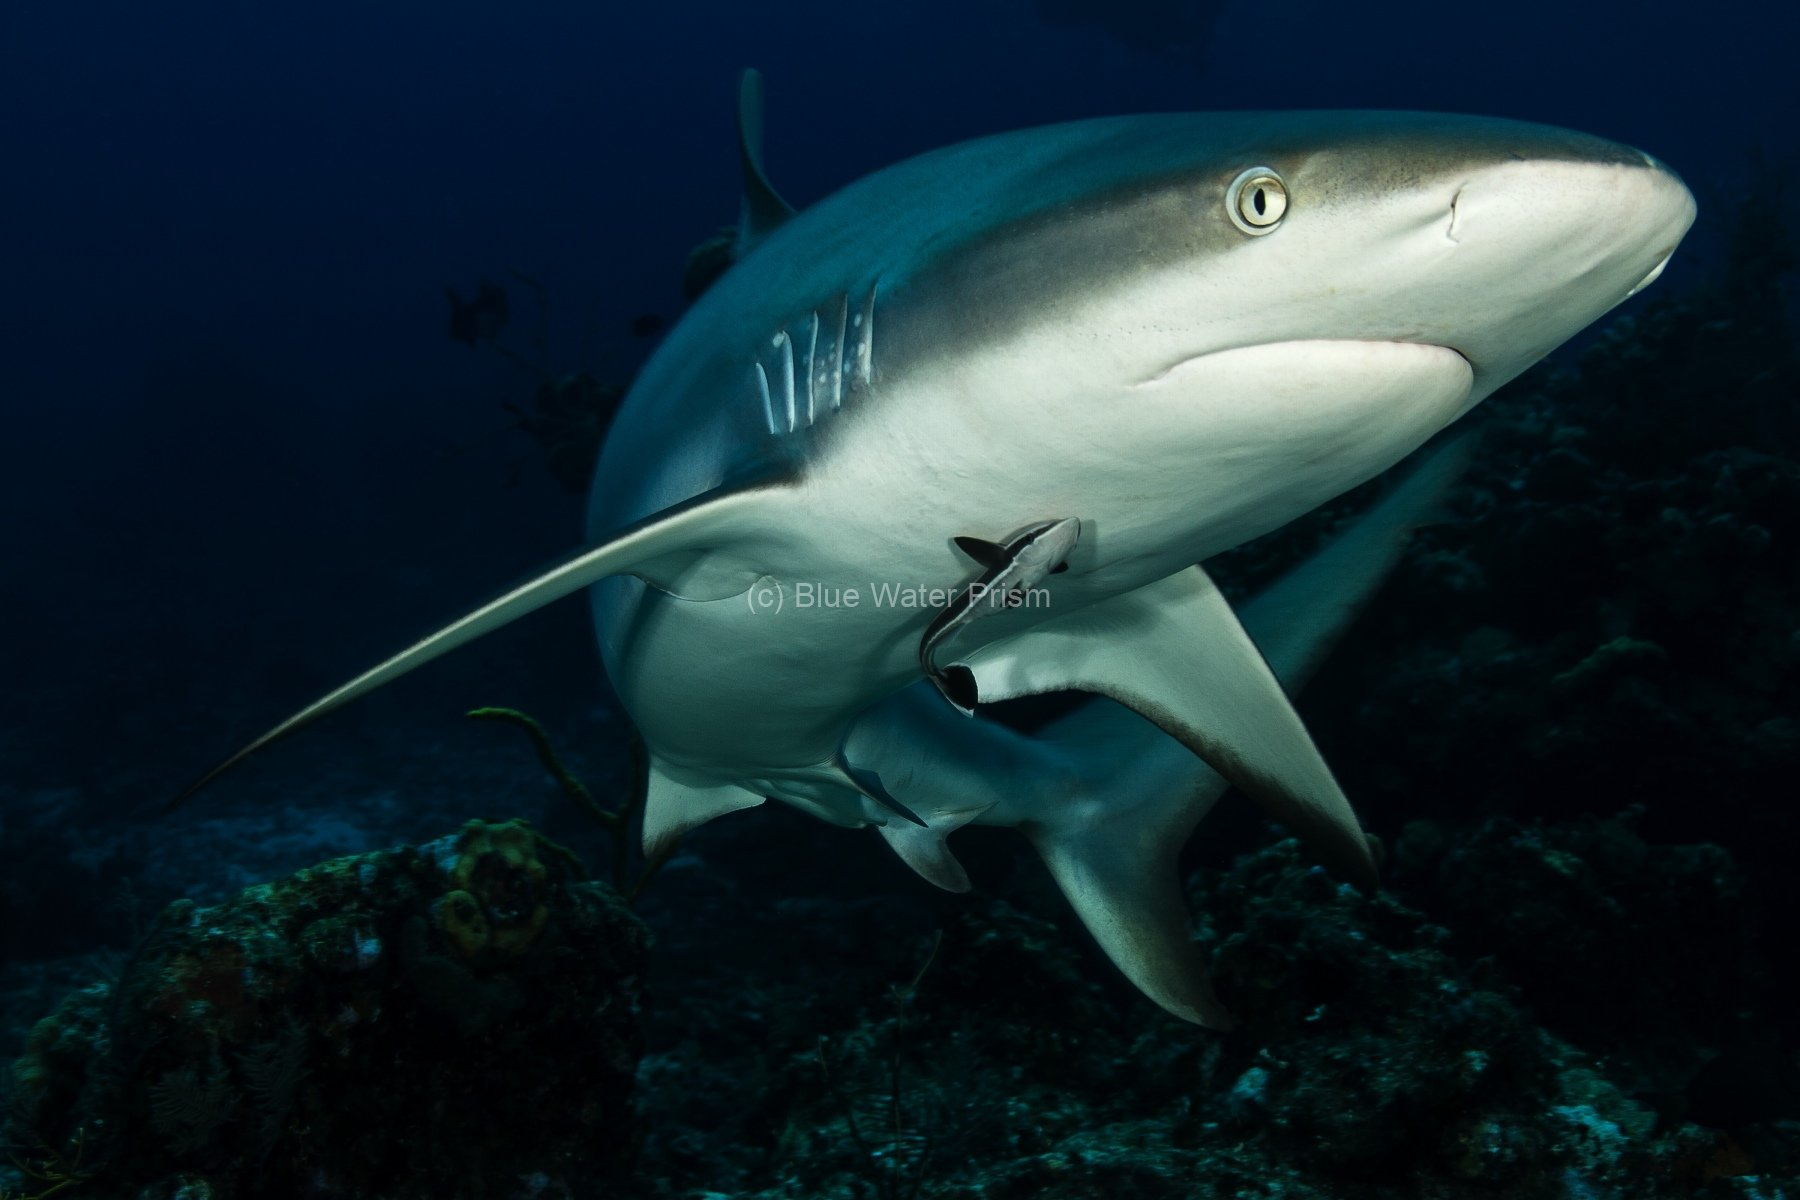 Carribean Reef Shark swimming in Turks & Caicos